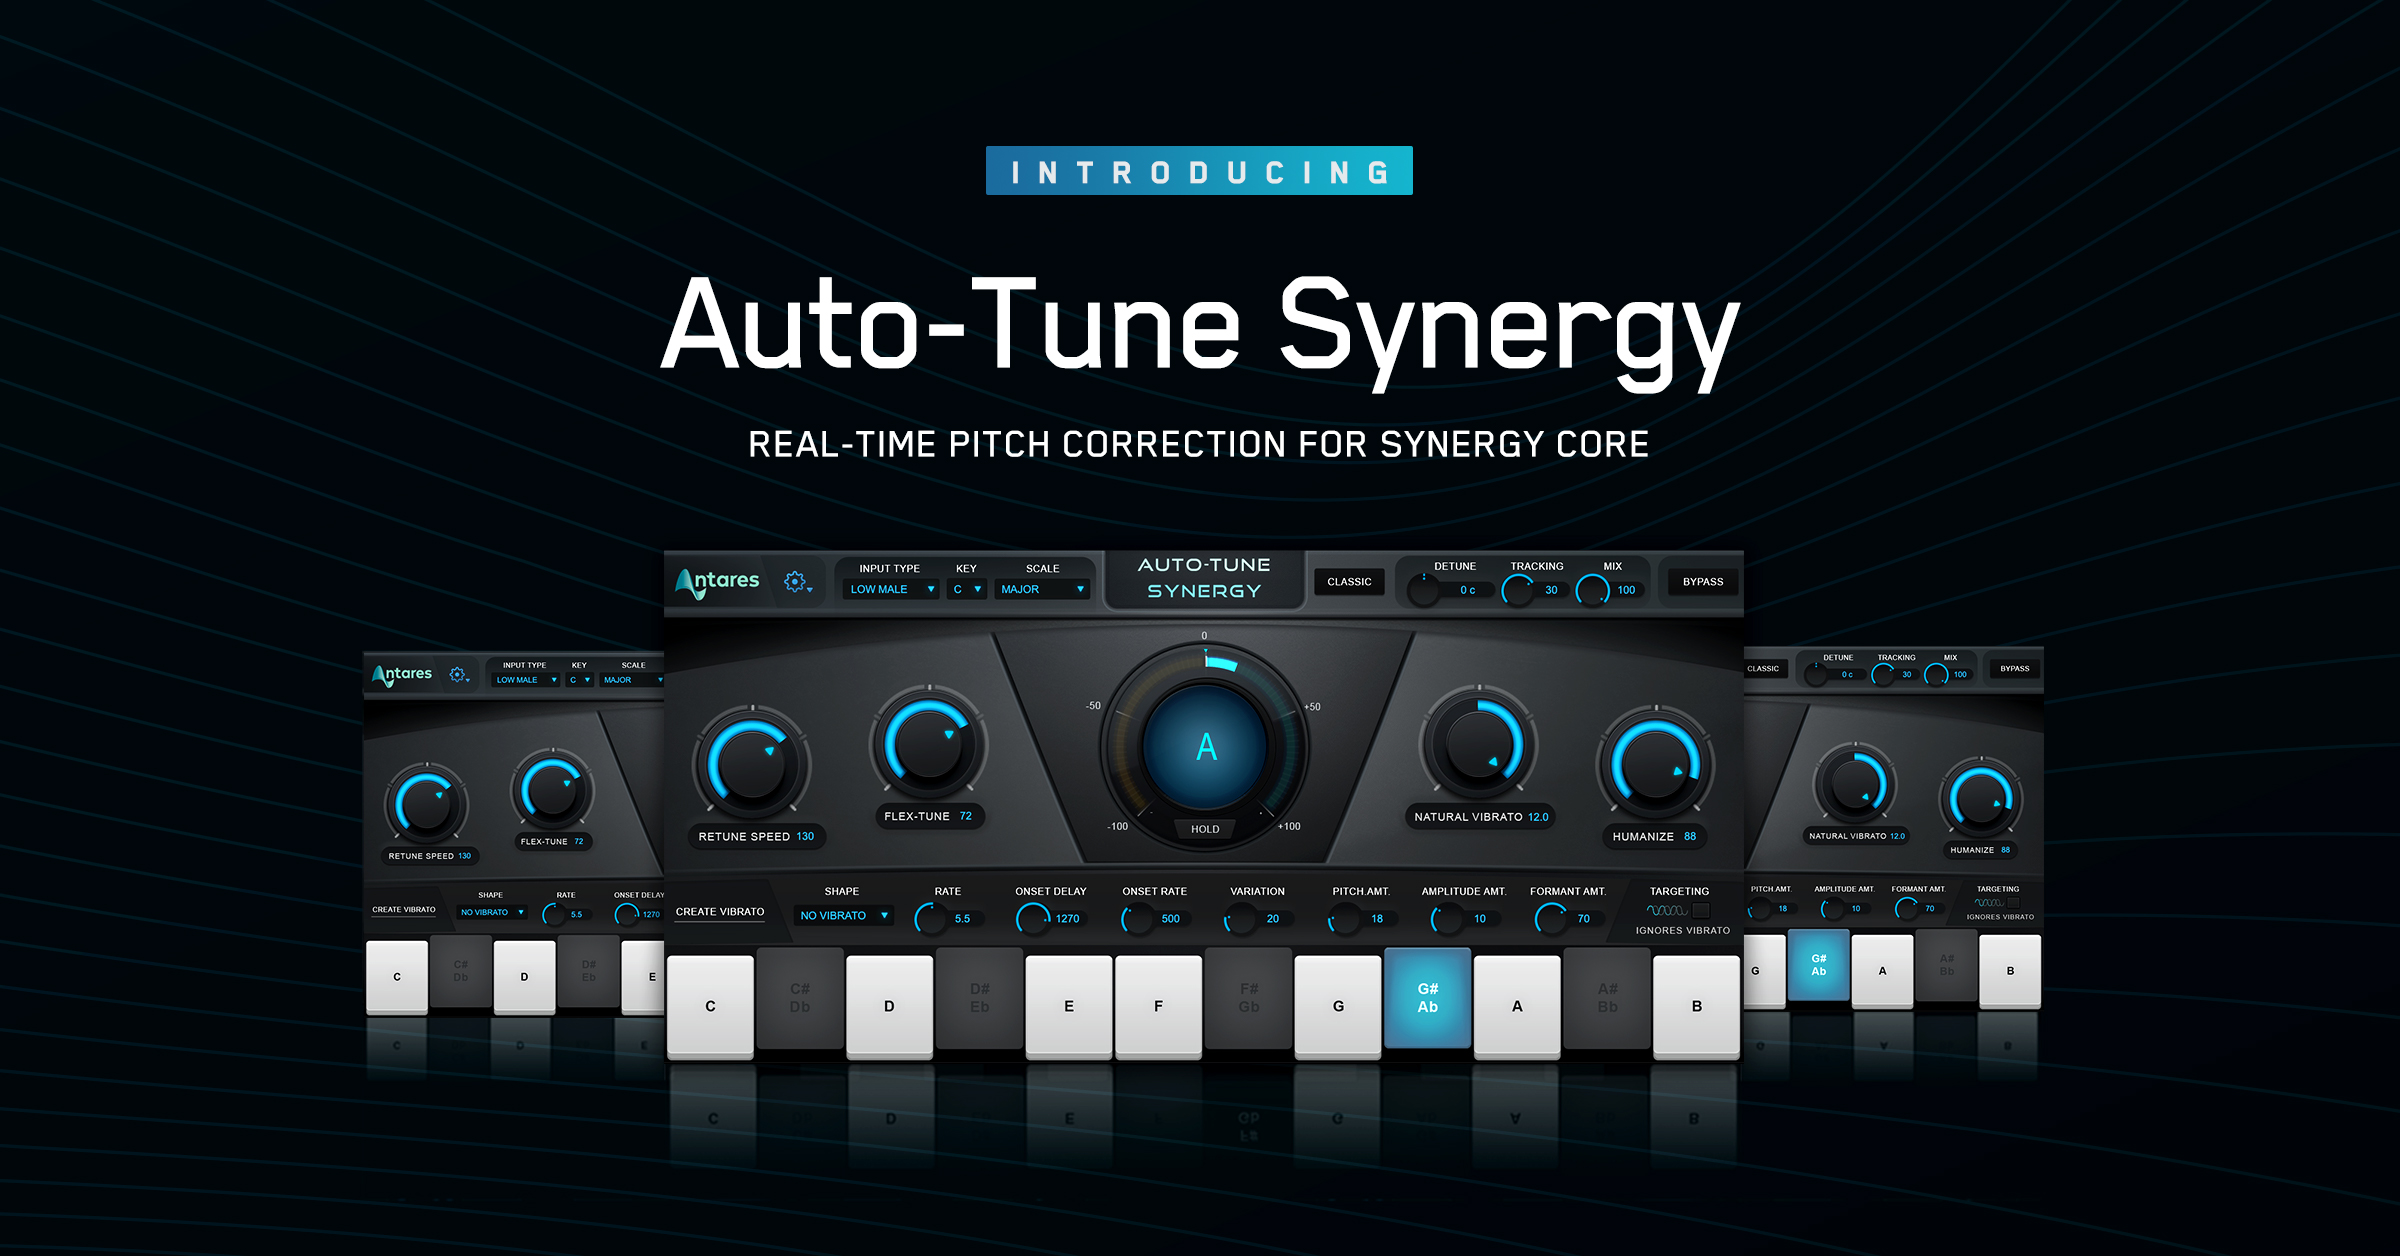 Auto-Tune Synergy